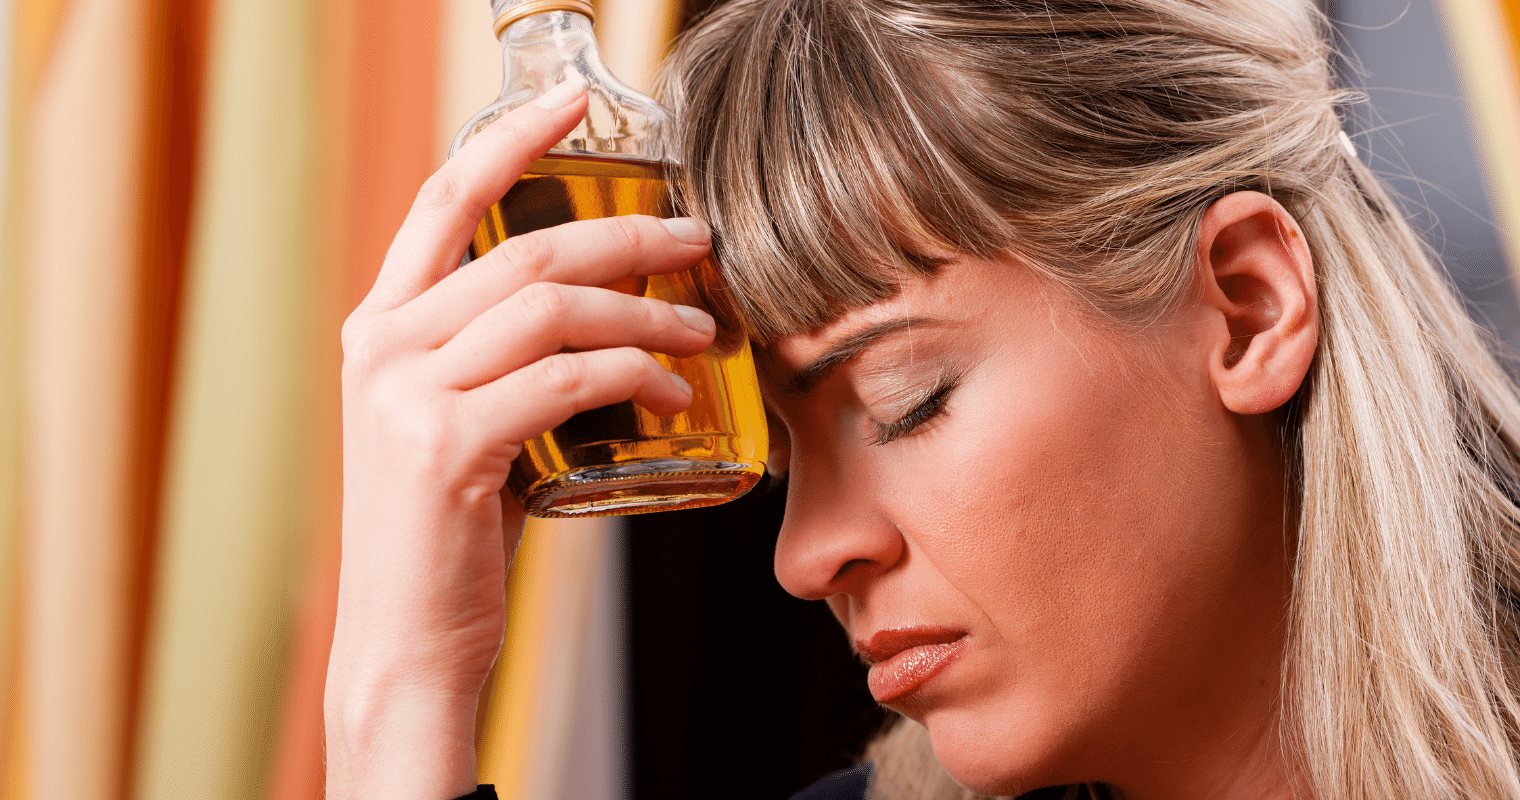 Early Signs Of Alcohol Addiction